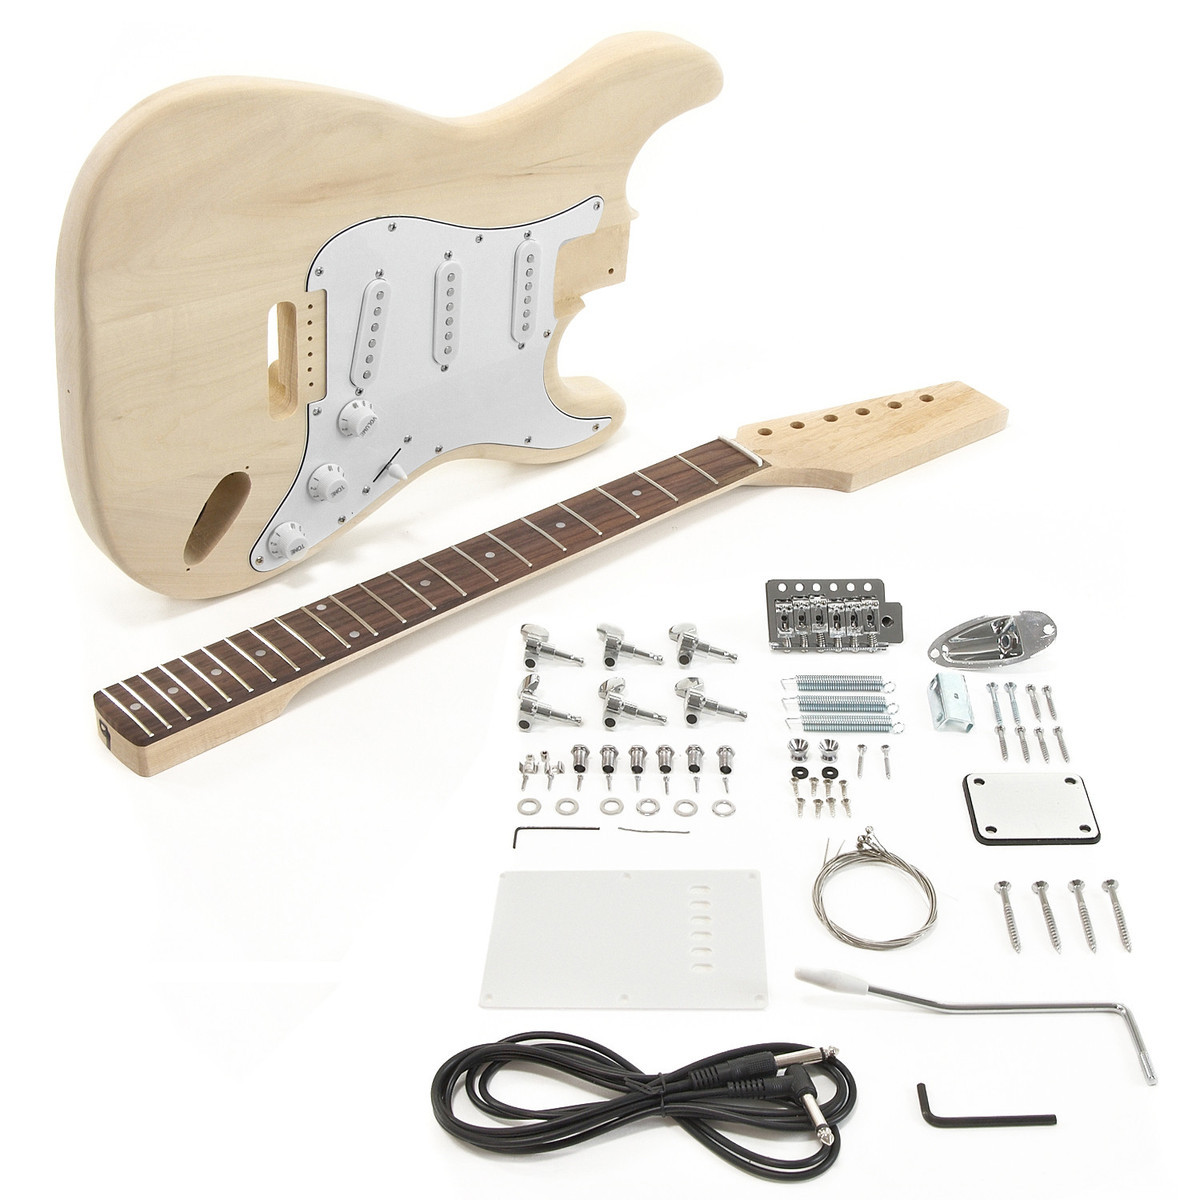 Best ideas about DIY Electric Guitar Kit . Save or Pin LA Electric Guitar DIY Kit at Gear4music Now.